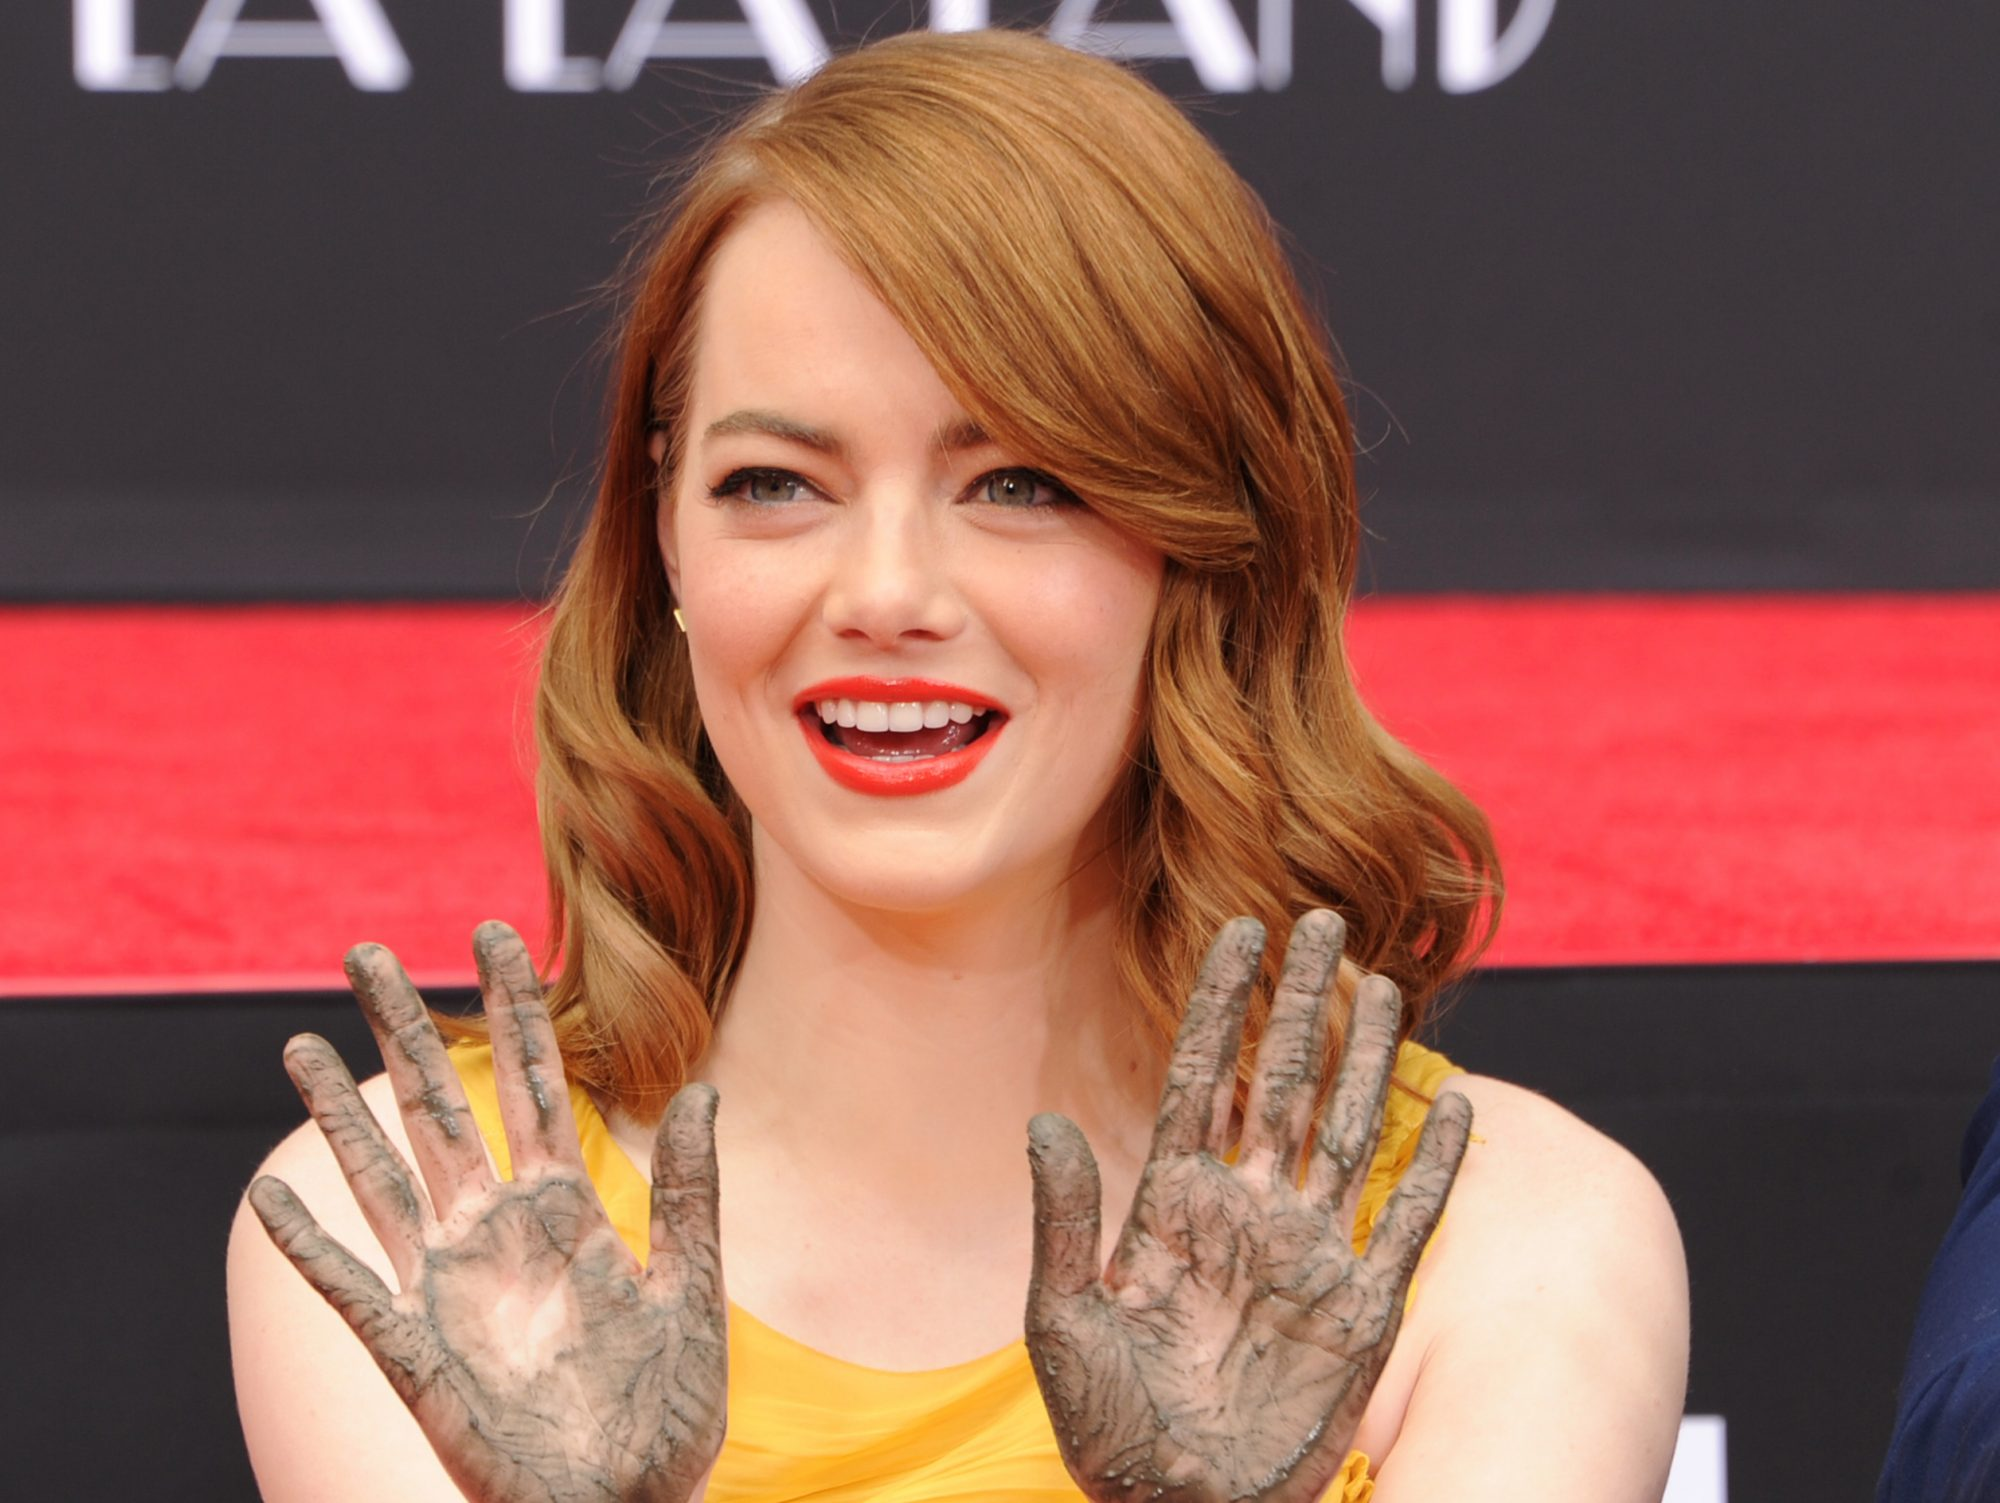 Emma Stone cement hands